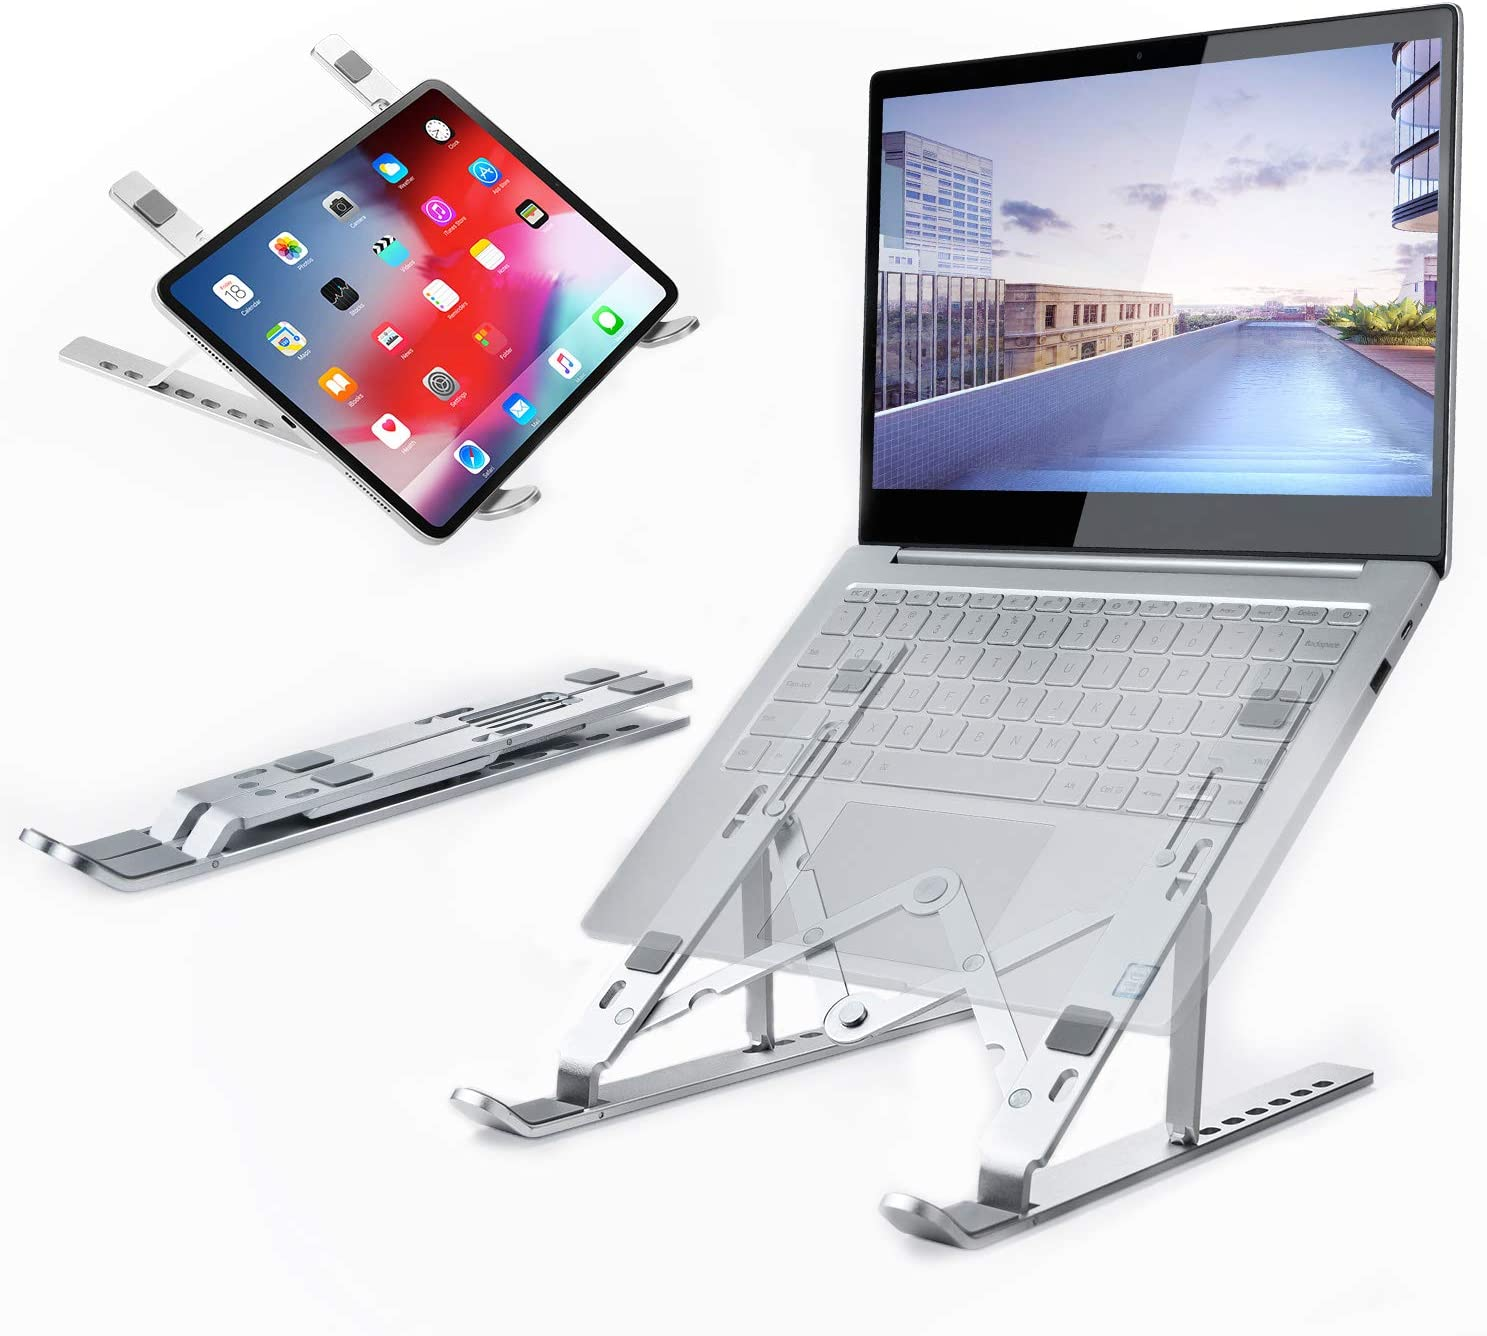 Laptop Stand Portable, Atokit Adjustable Aluminum Laptop Tablet Stand Ergonomic Foldable Notebook Stand Computer Holder Stand Compatible with MacBook Air Pro, Dell HP Lenovo Asus Laptops More 9-15.6""